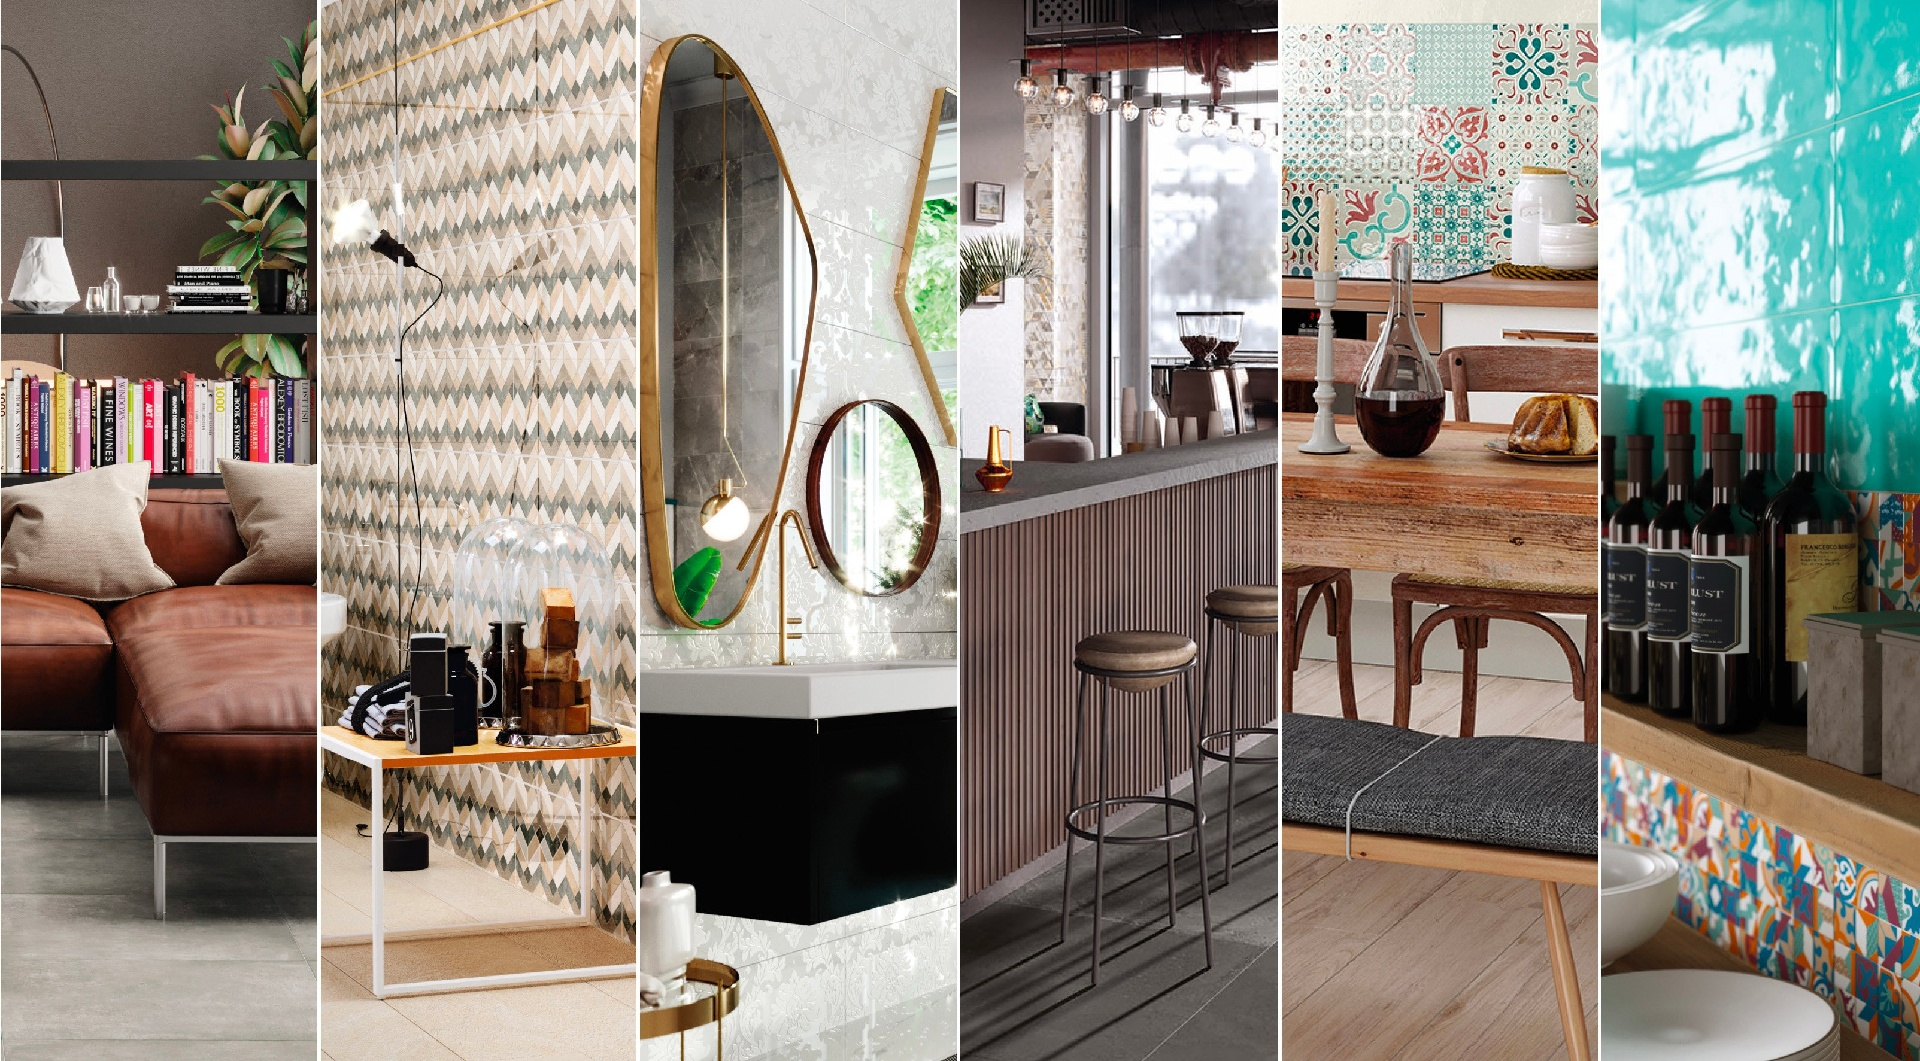 Which styleto choose foryour home: here 6 suggestions